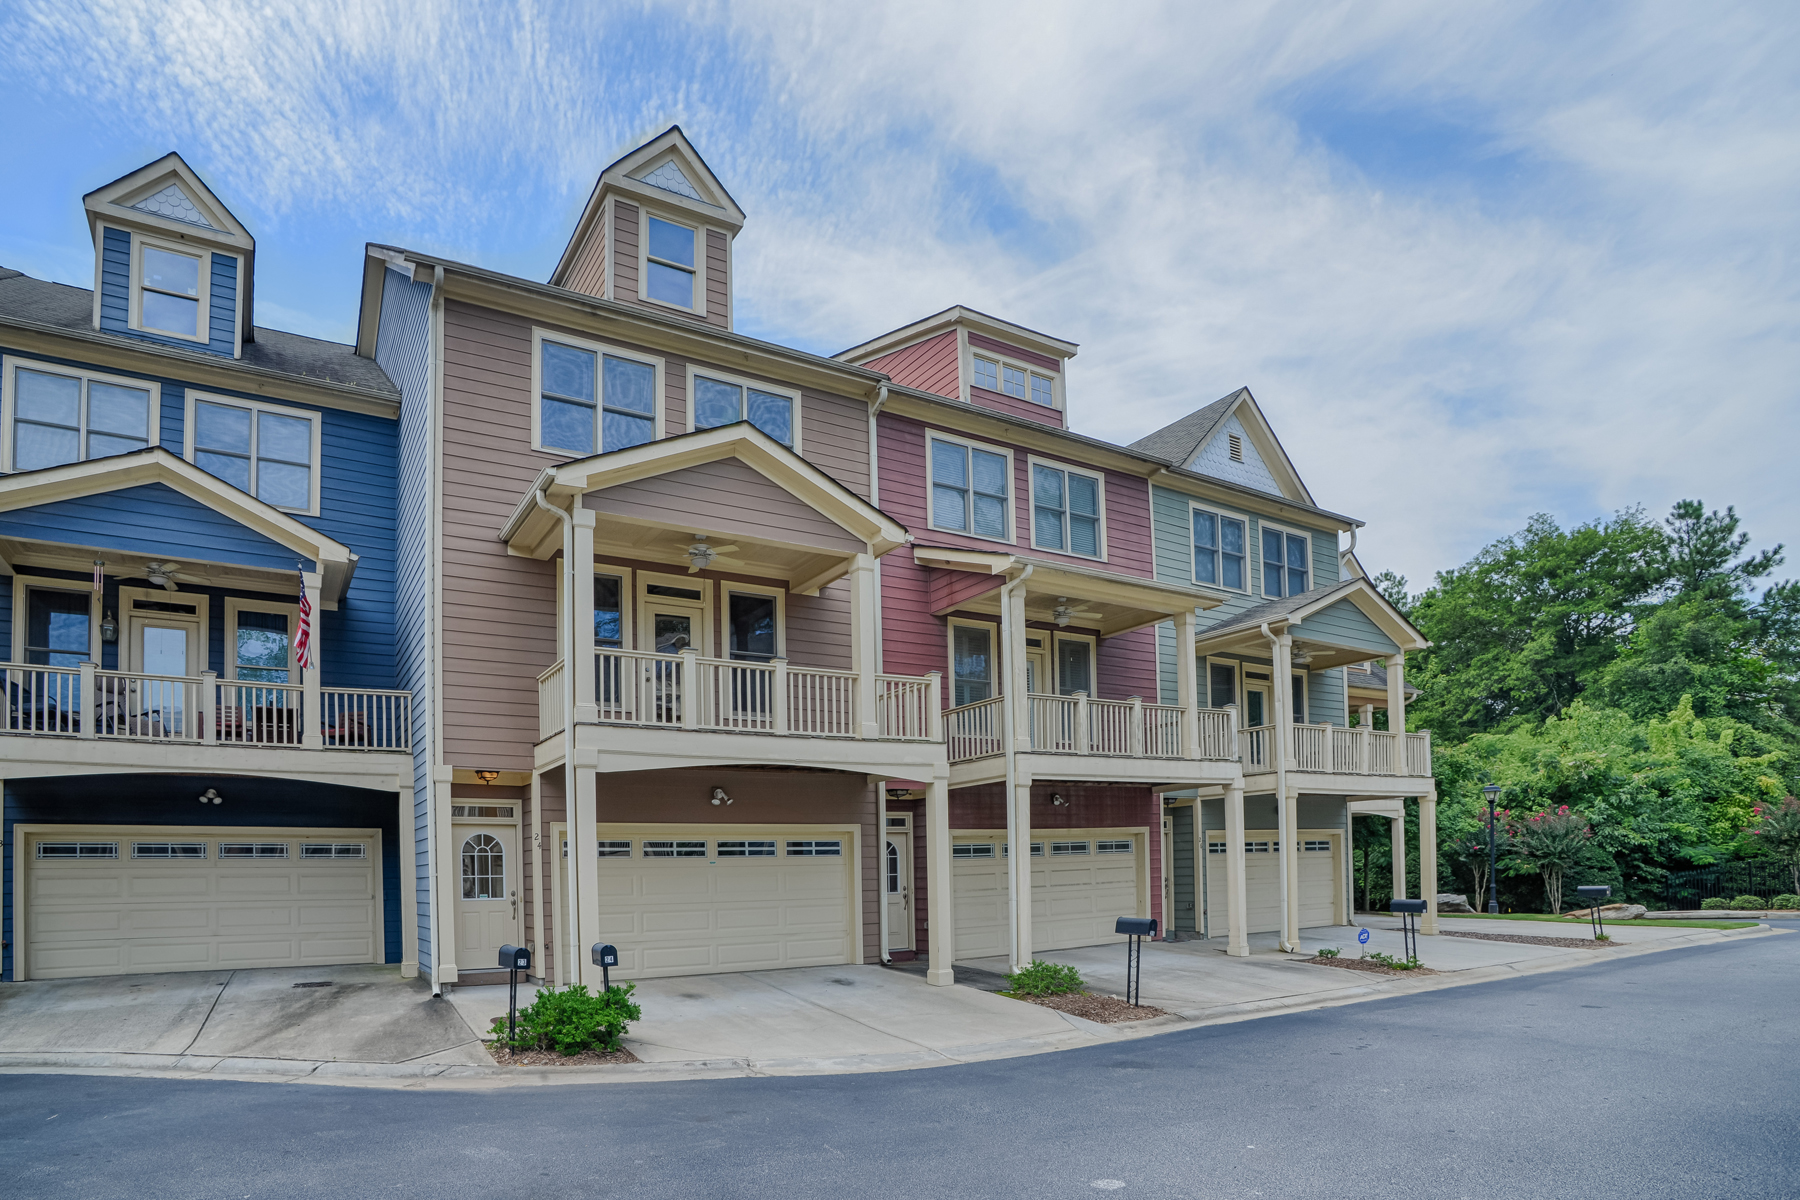 Townhouse for Sale at Hip West Midtown Townhouse 1079 Marietta Boulevard NW #24 Atlanta, Georgia 30318 United States